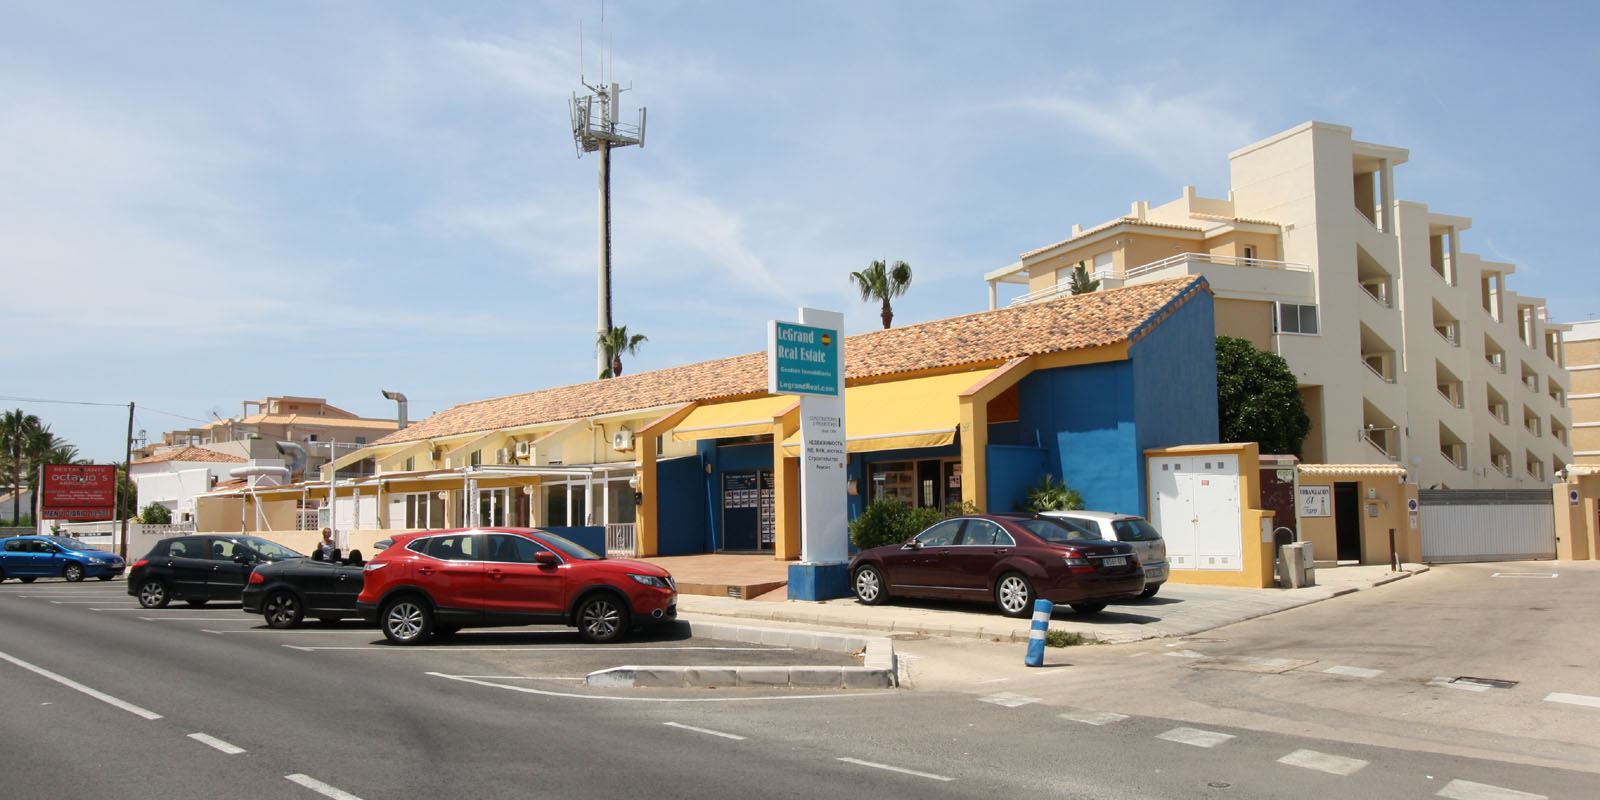 LeGrand Real Estate Immobilie in spanien, Denia